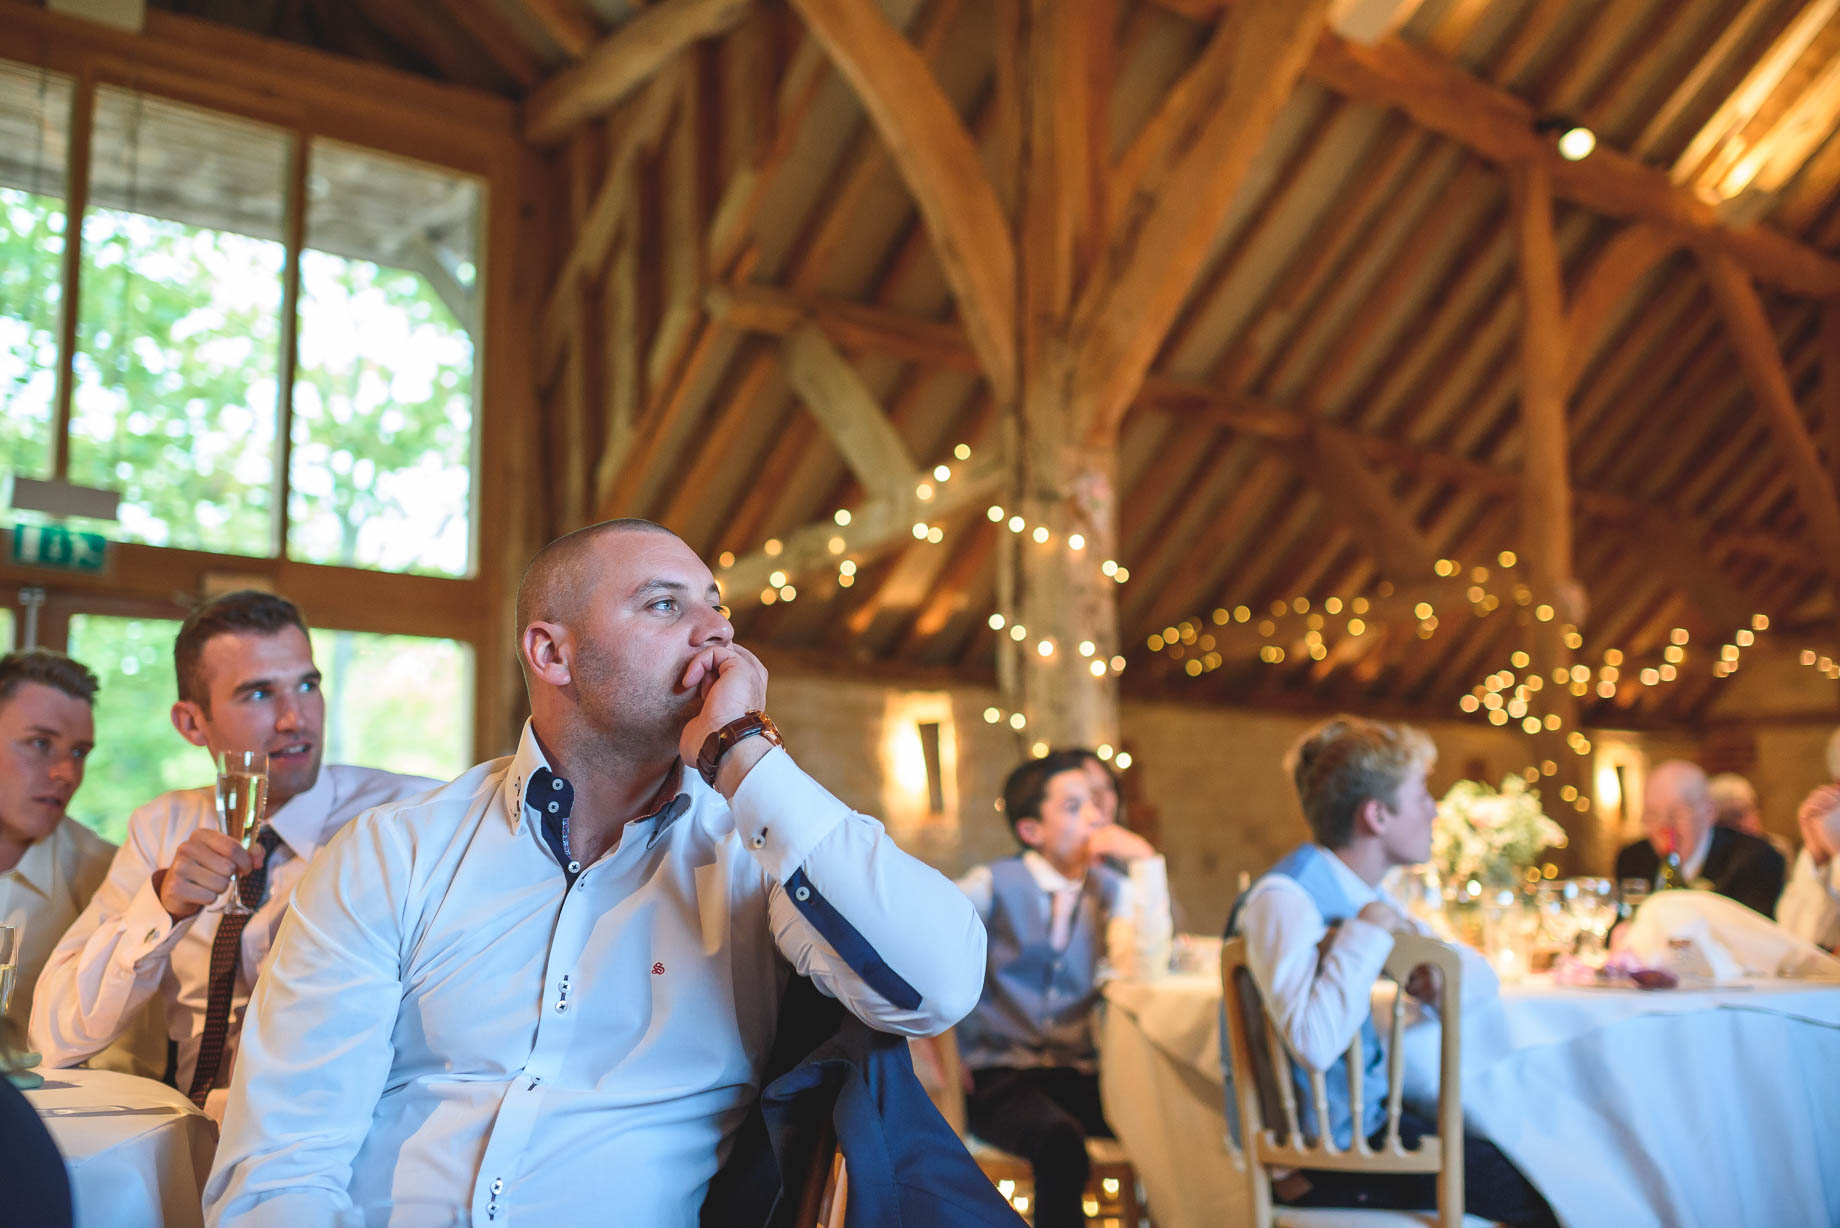 Bury Court Barn wedding photography - Guy Collier - Kate and Russ (132 of 187)